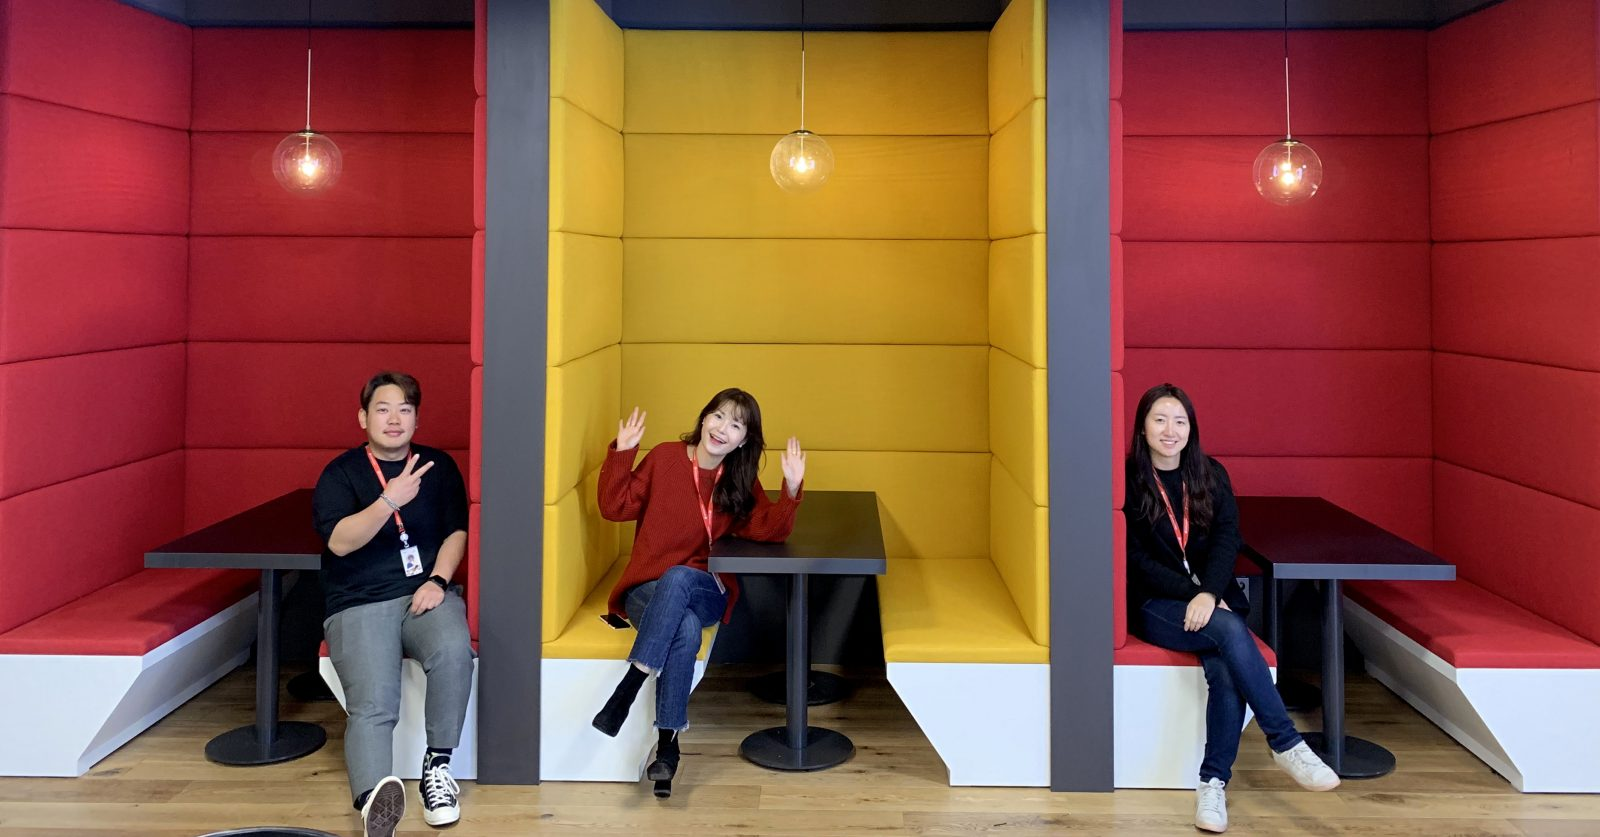 Skyline views and concept design: highlights of the Delivery Hero Korea office in Seoul